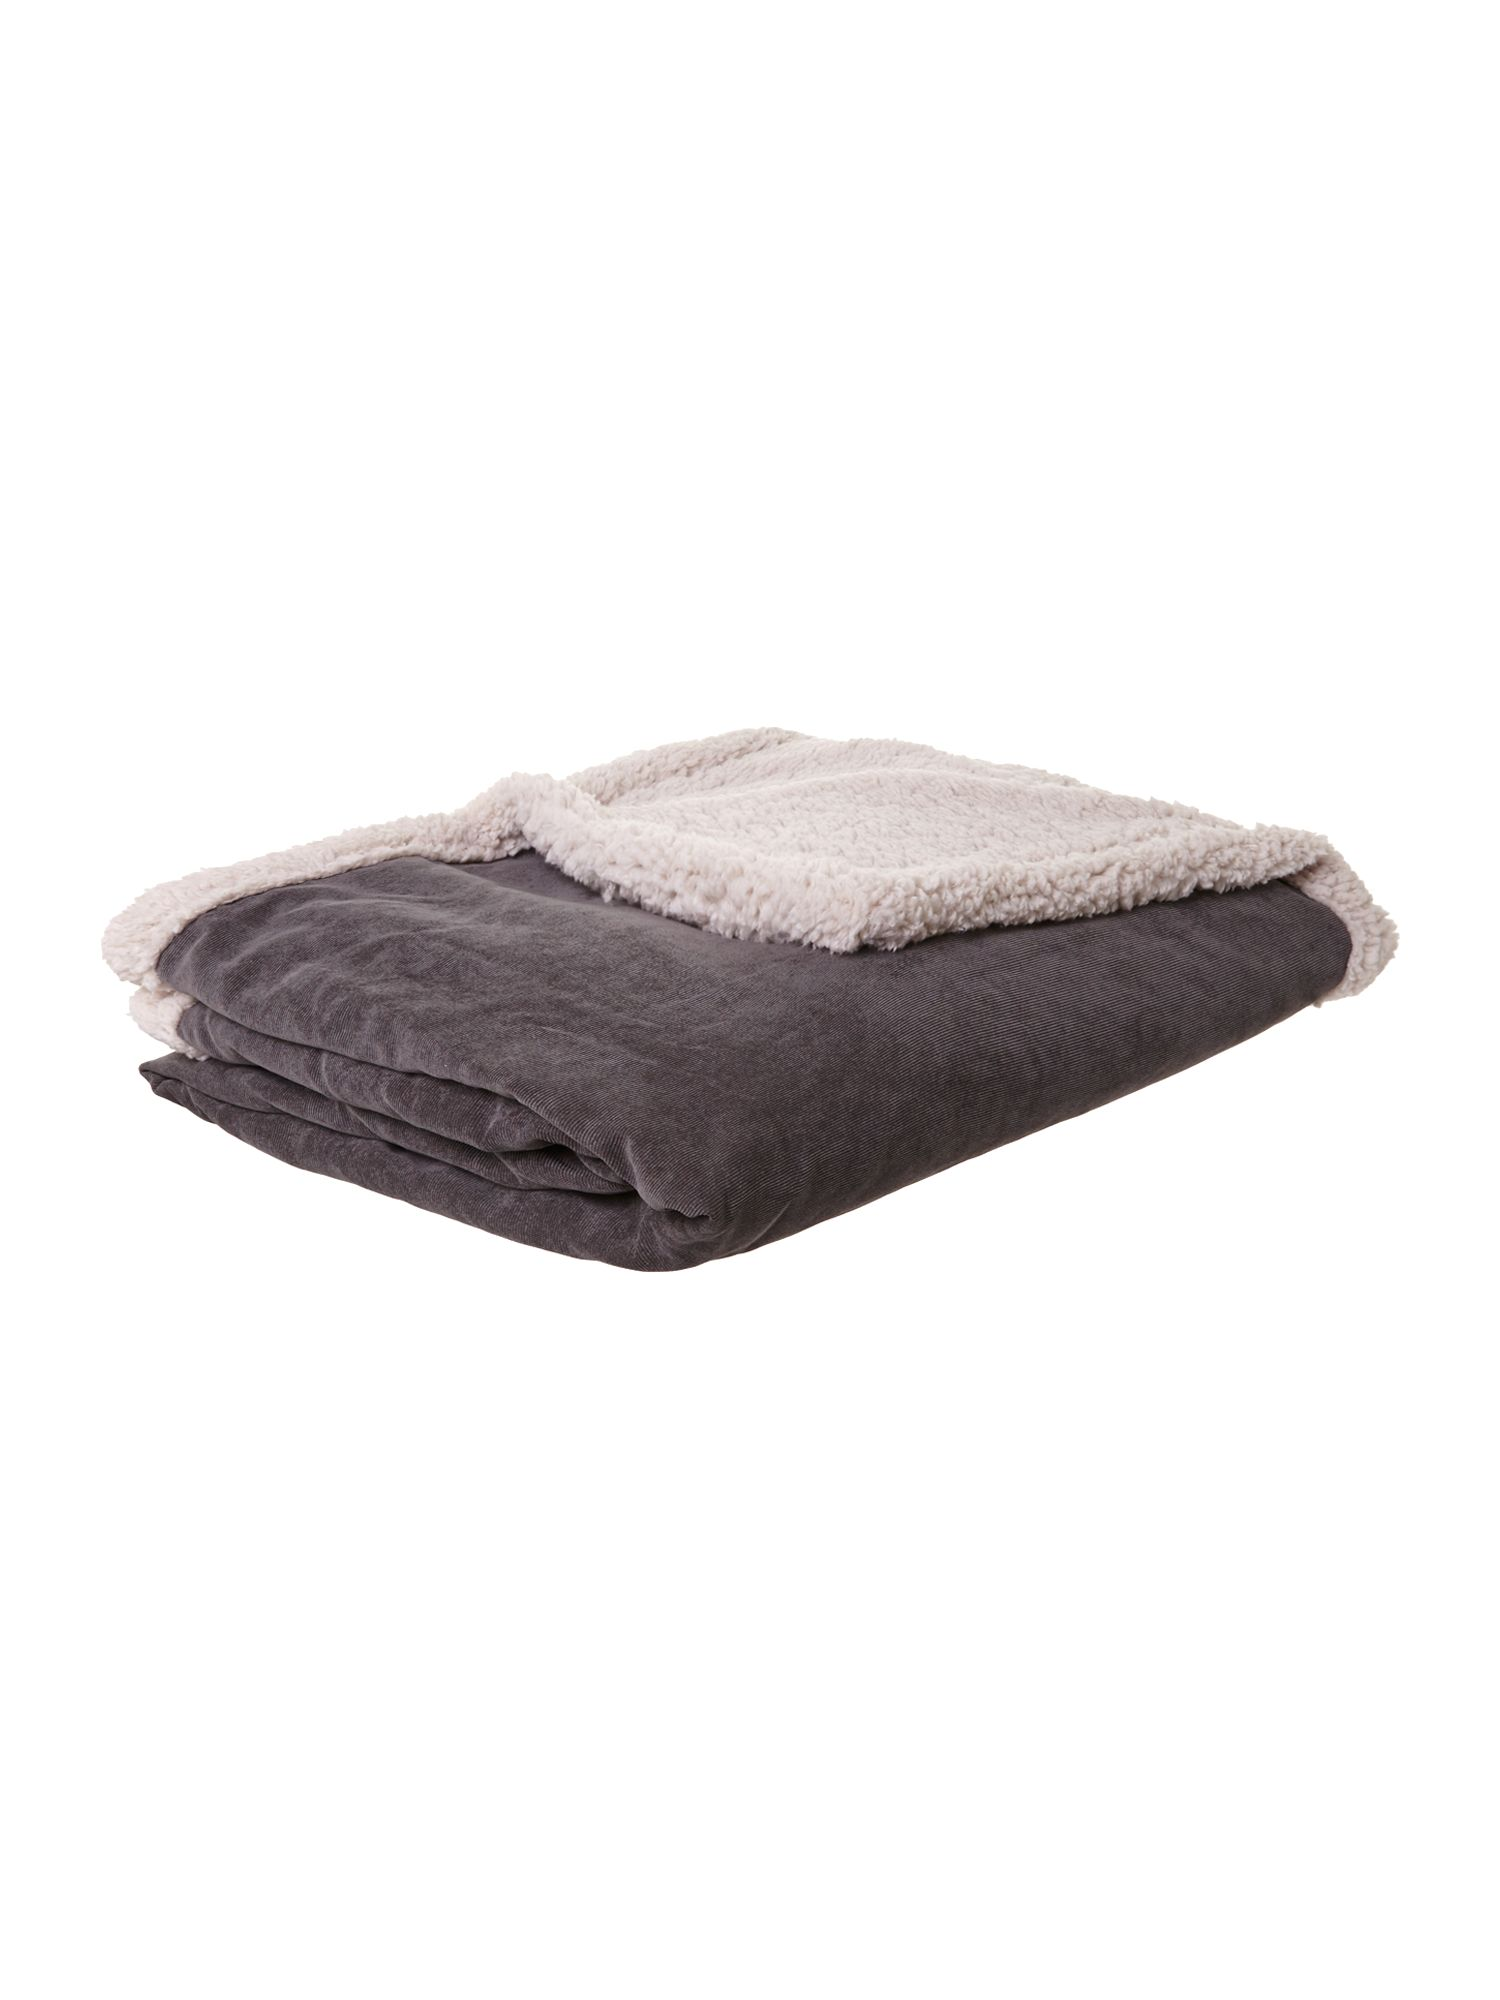 Grey corduroy fleece blanket